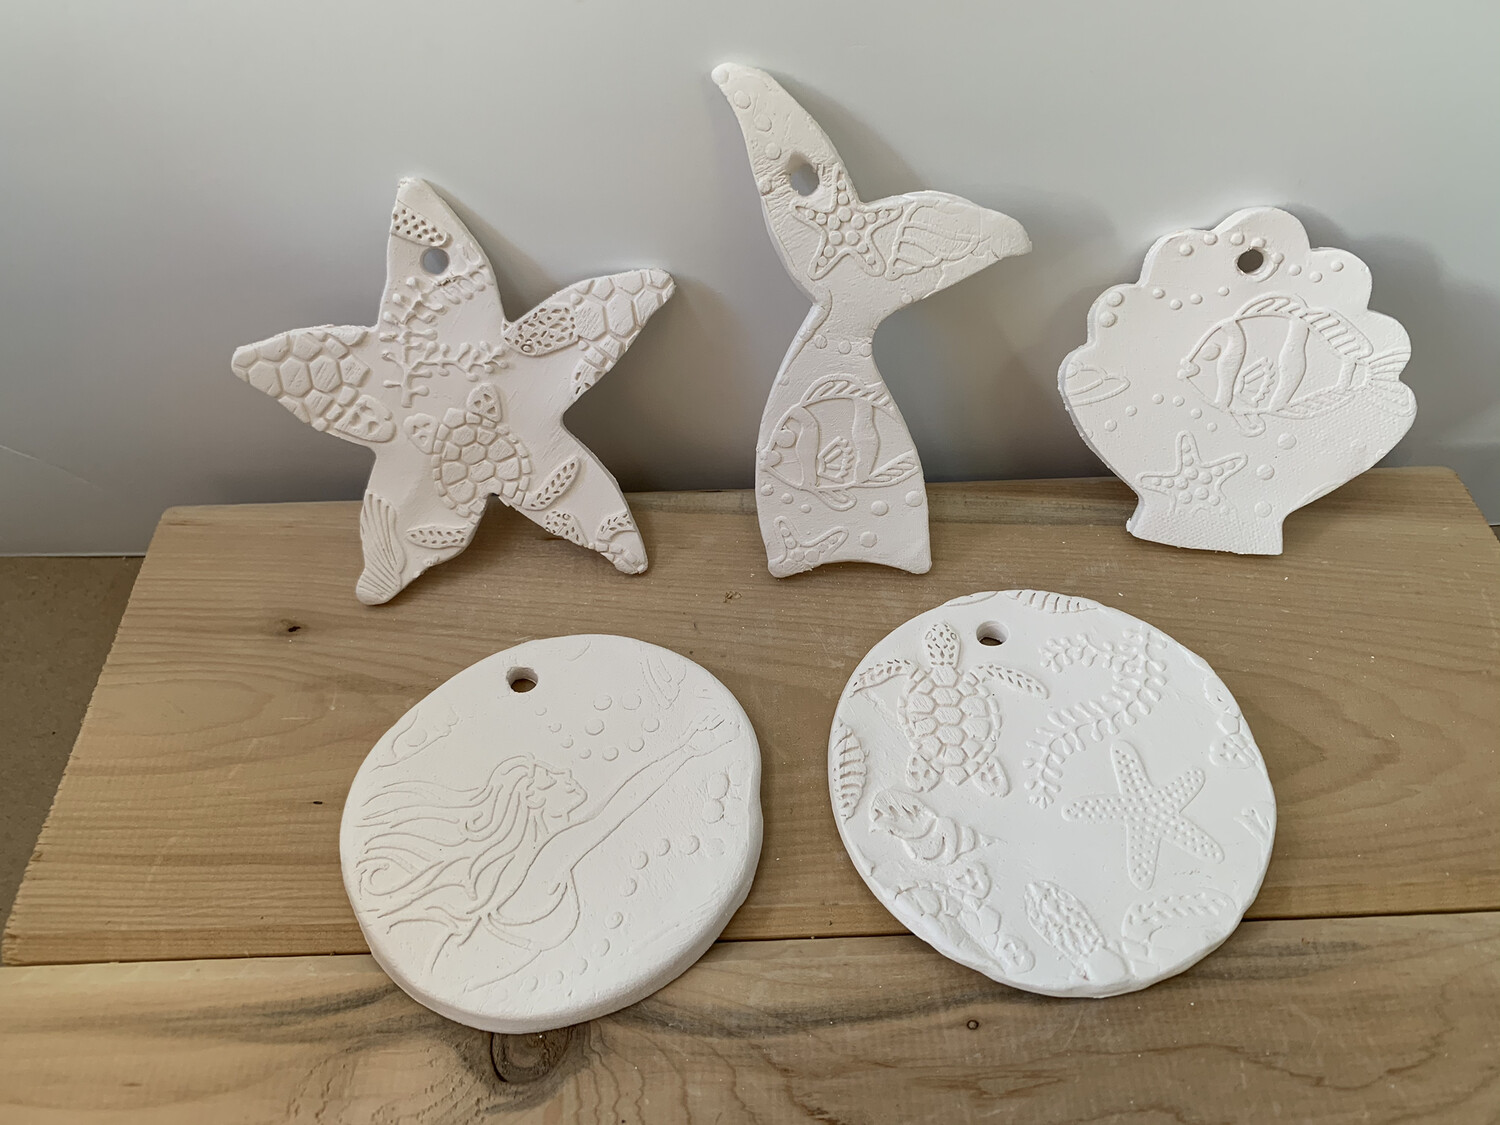 Paint Your Own Pottery - Ceramic   - Set of 5 Ocean Christmas Ornaments - Turtle Circle, Mermaid Circle, Mermaid Tail, Starfish, Scallop Shell